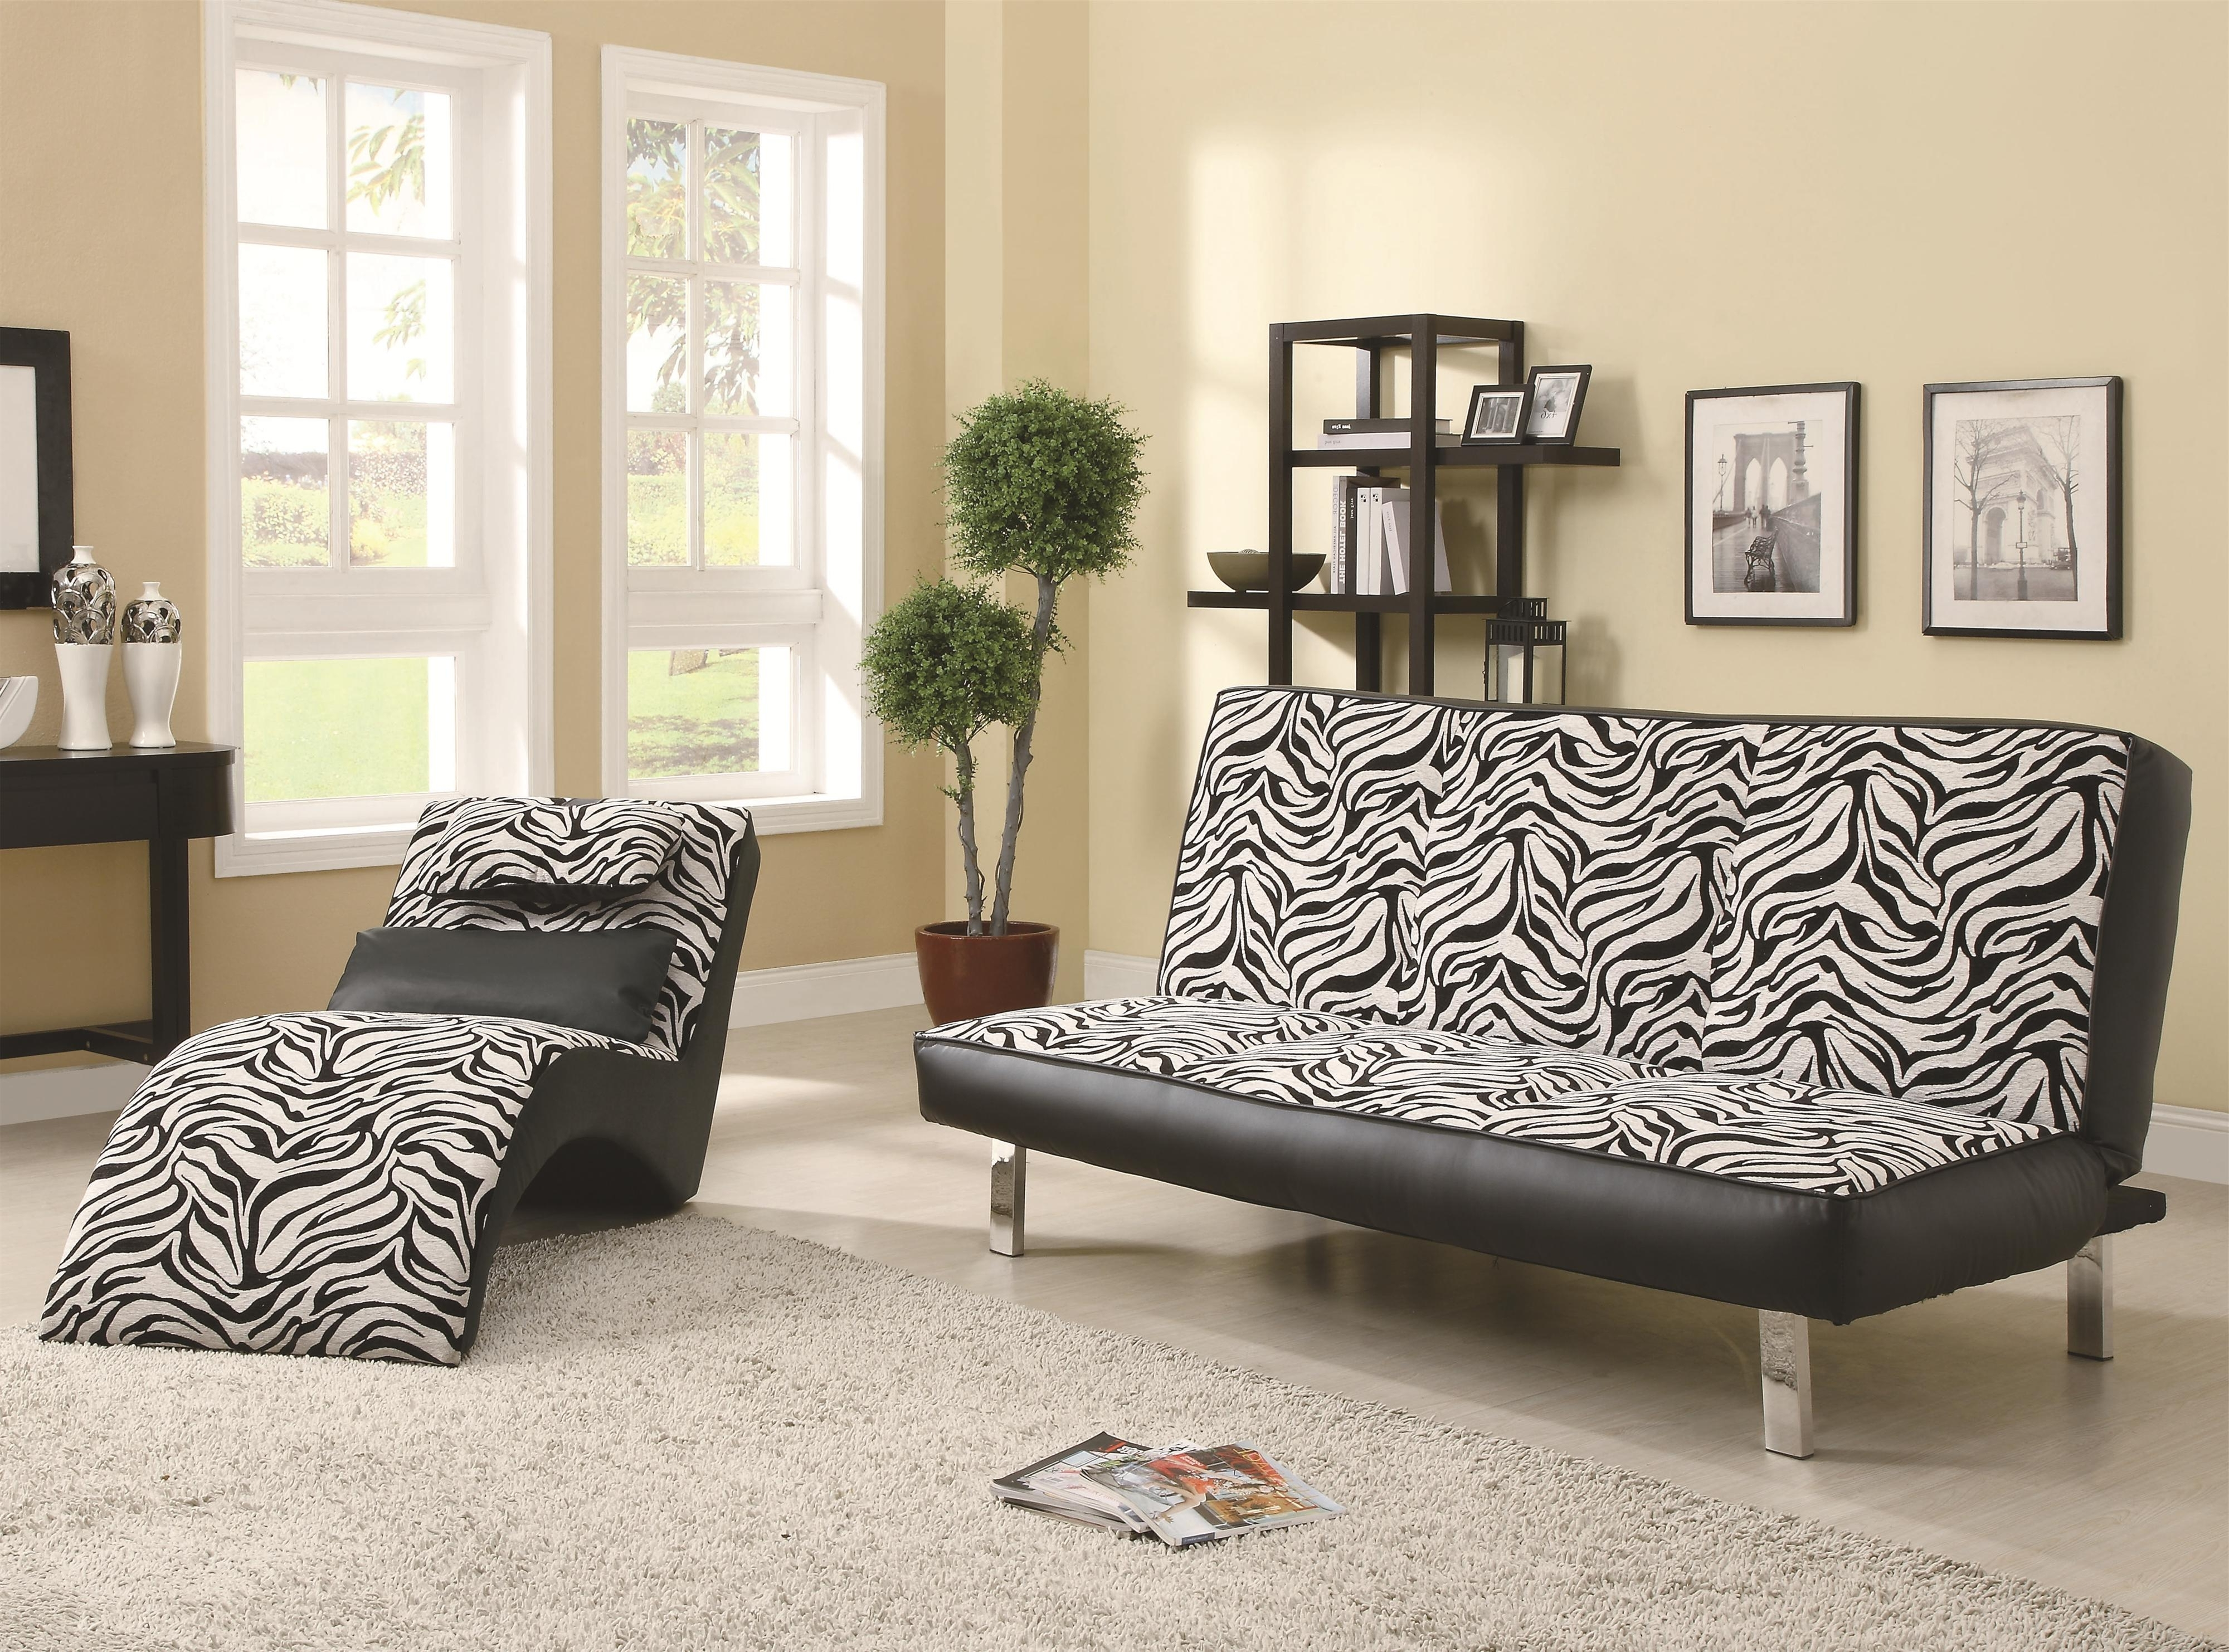 Zebra Chaises With Best And Newest Zebra Lounge Chair Chaise • Lounge Chairs Ideas (View 14 of 15)